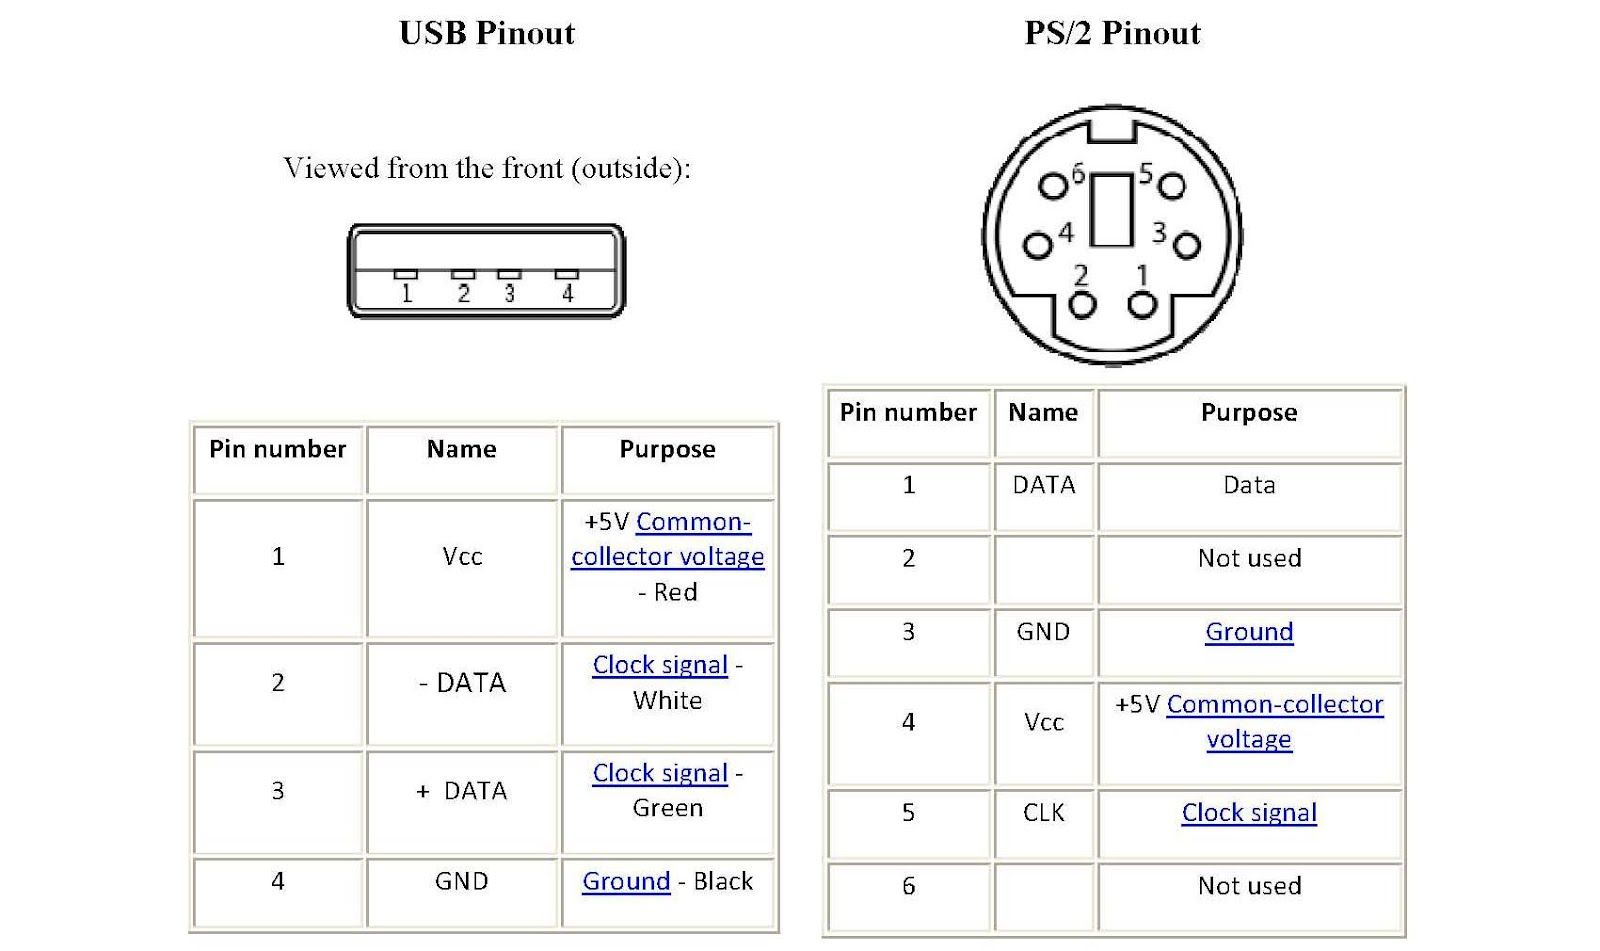 Ps2 Keyboard To Usb Best Of Ps2 Keyboard To Usb Wiring | Phones - Usb Wiring Diagram White Black Green Red